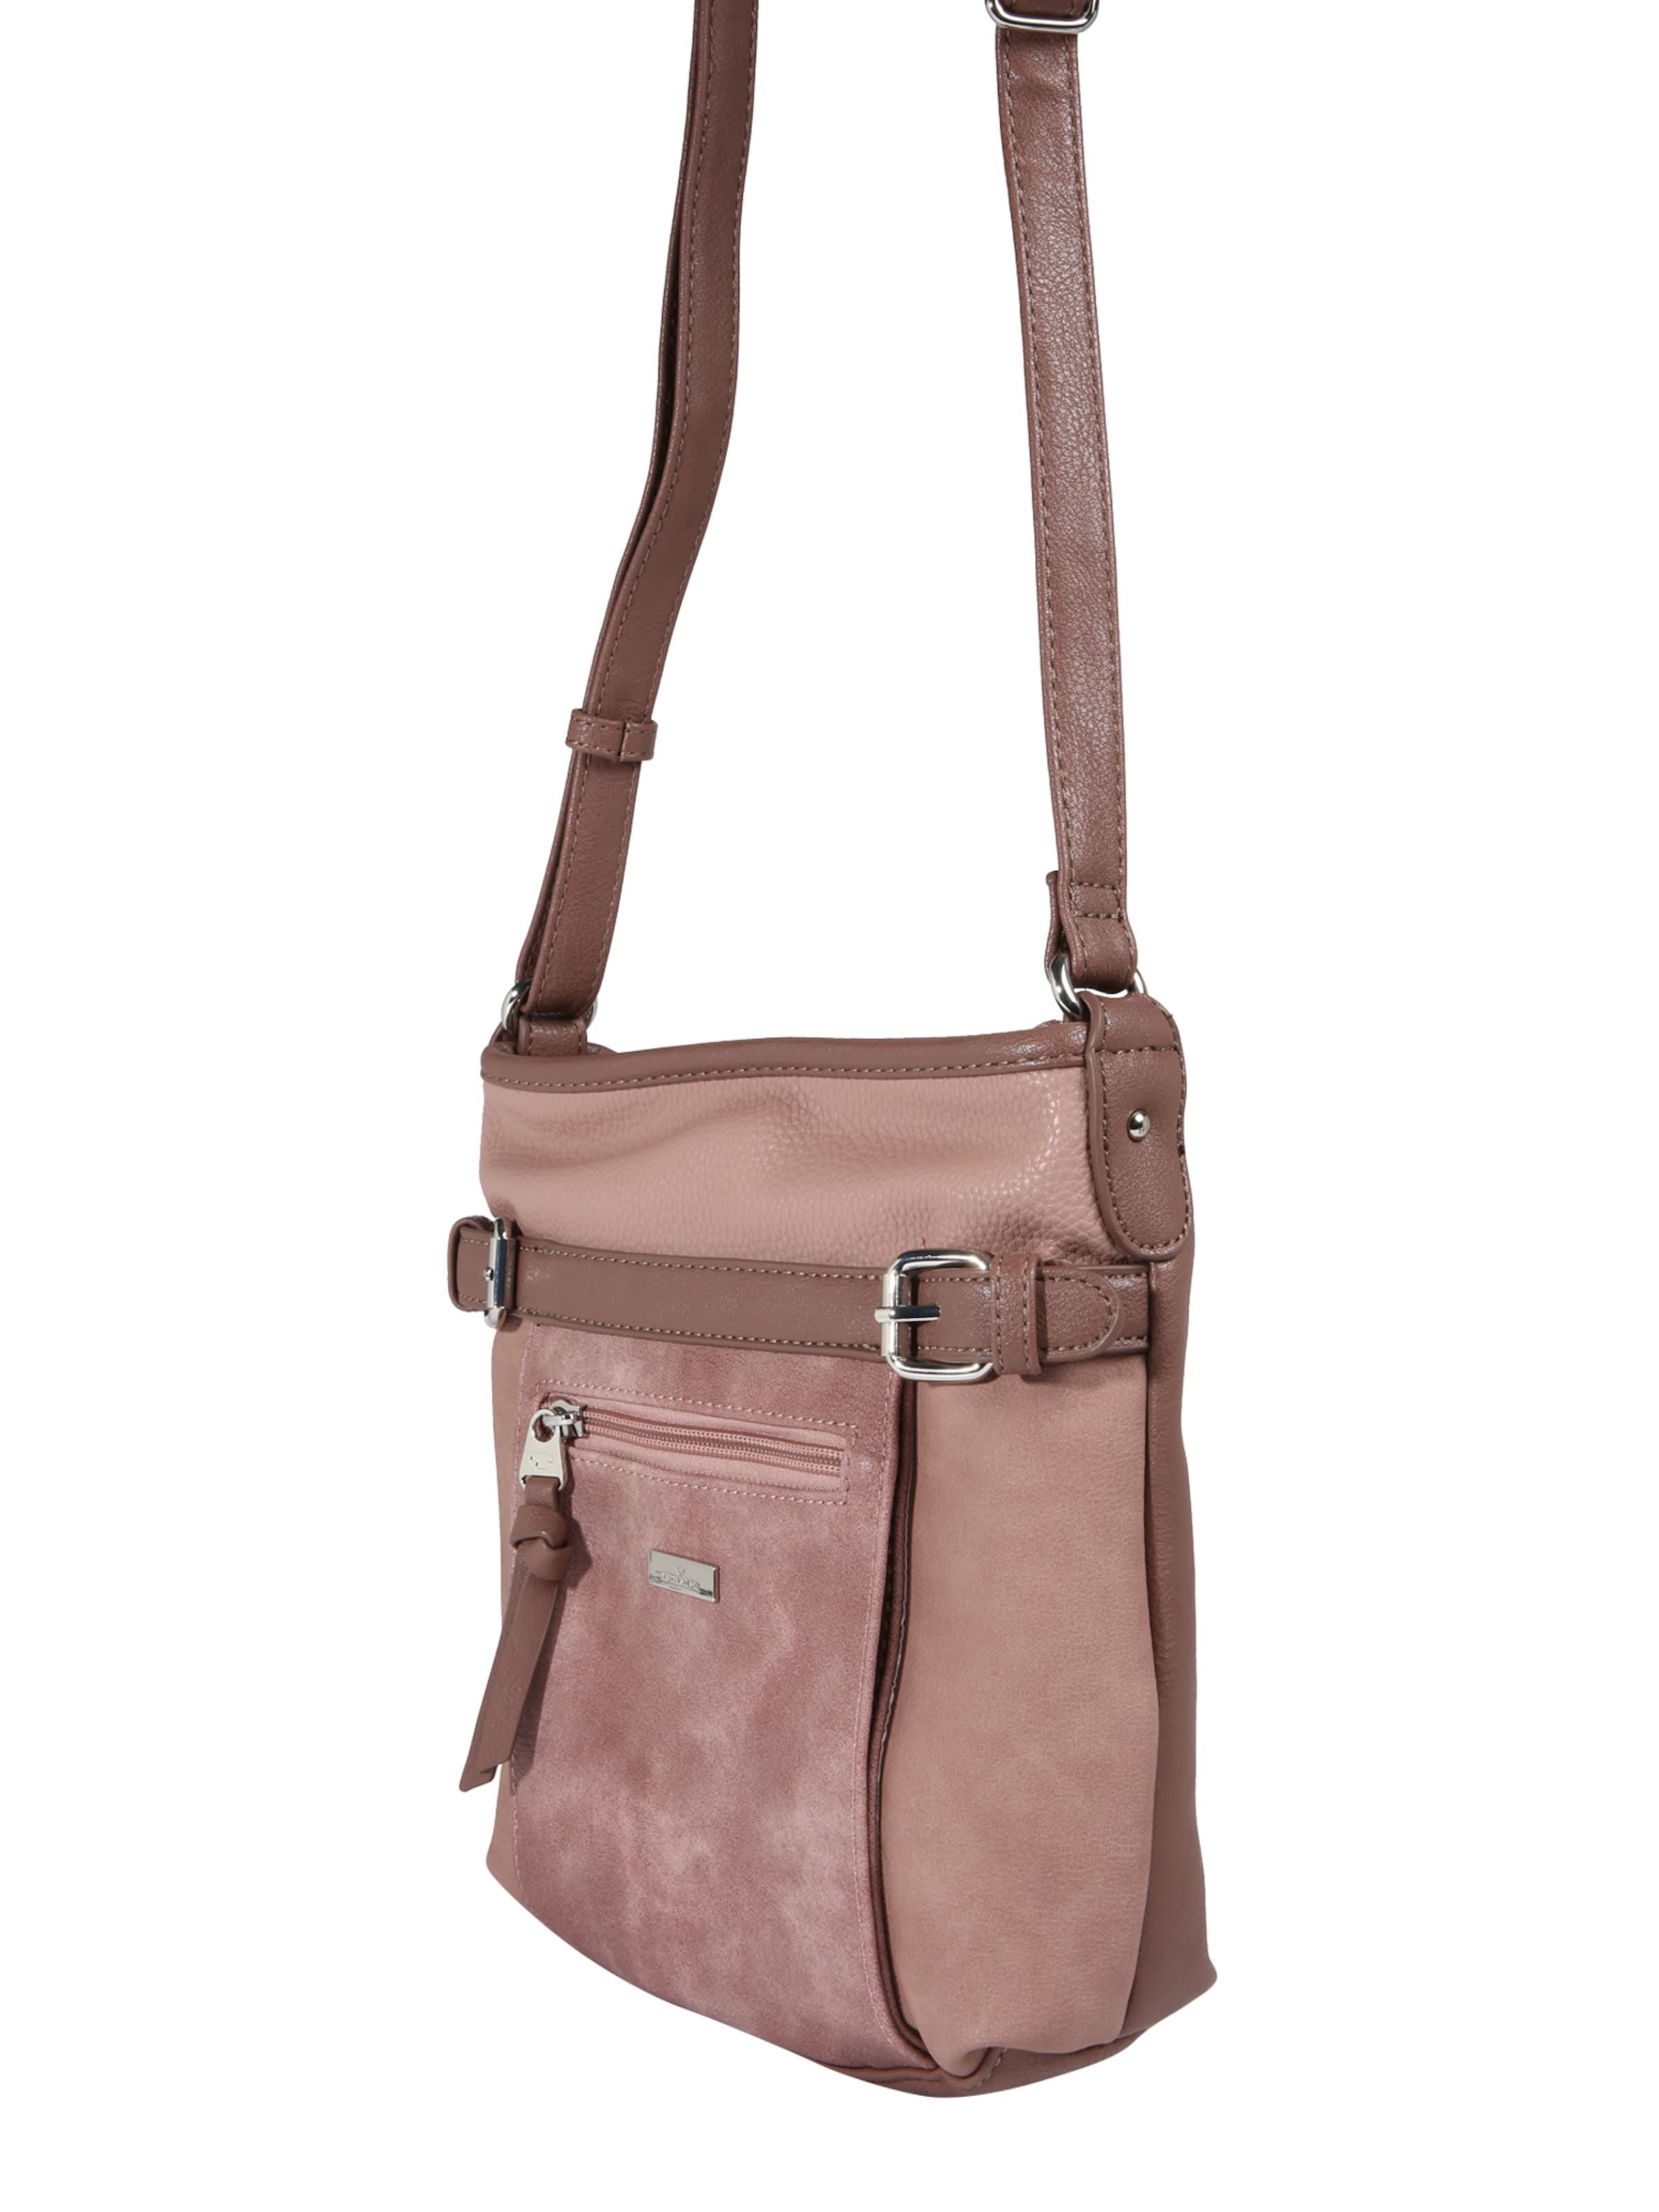 In Tasche 'juna' Tom Tailor Pink jVqpSzUMGL